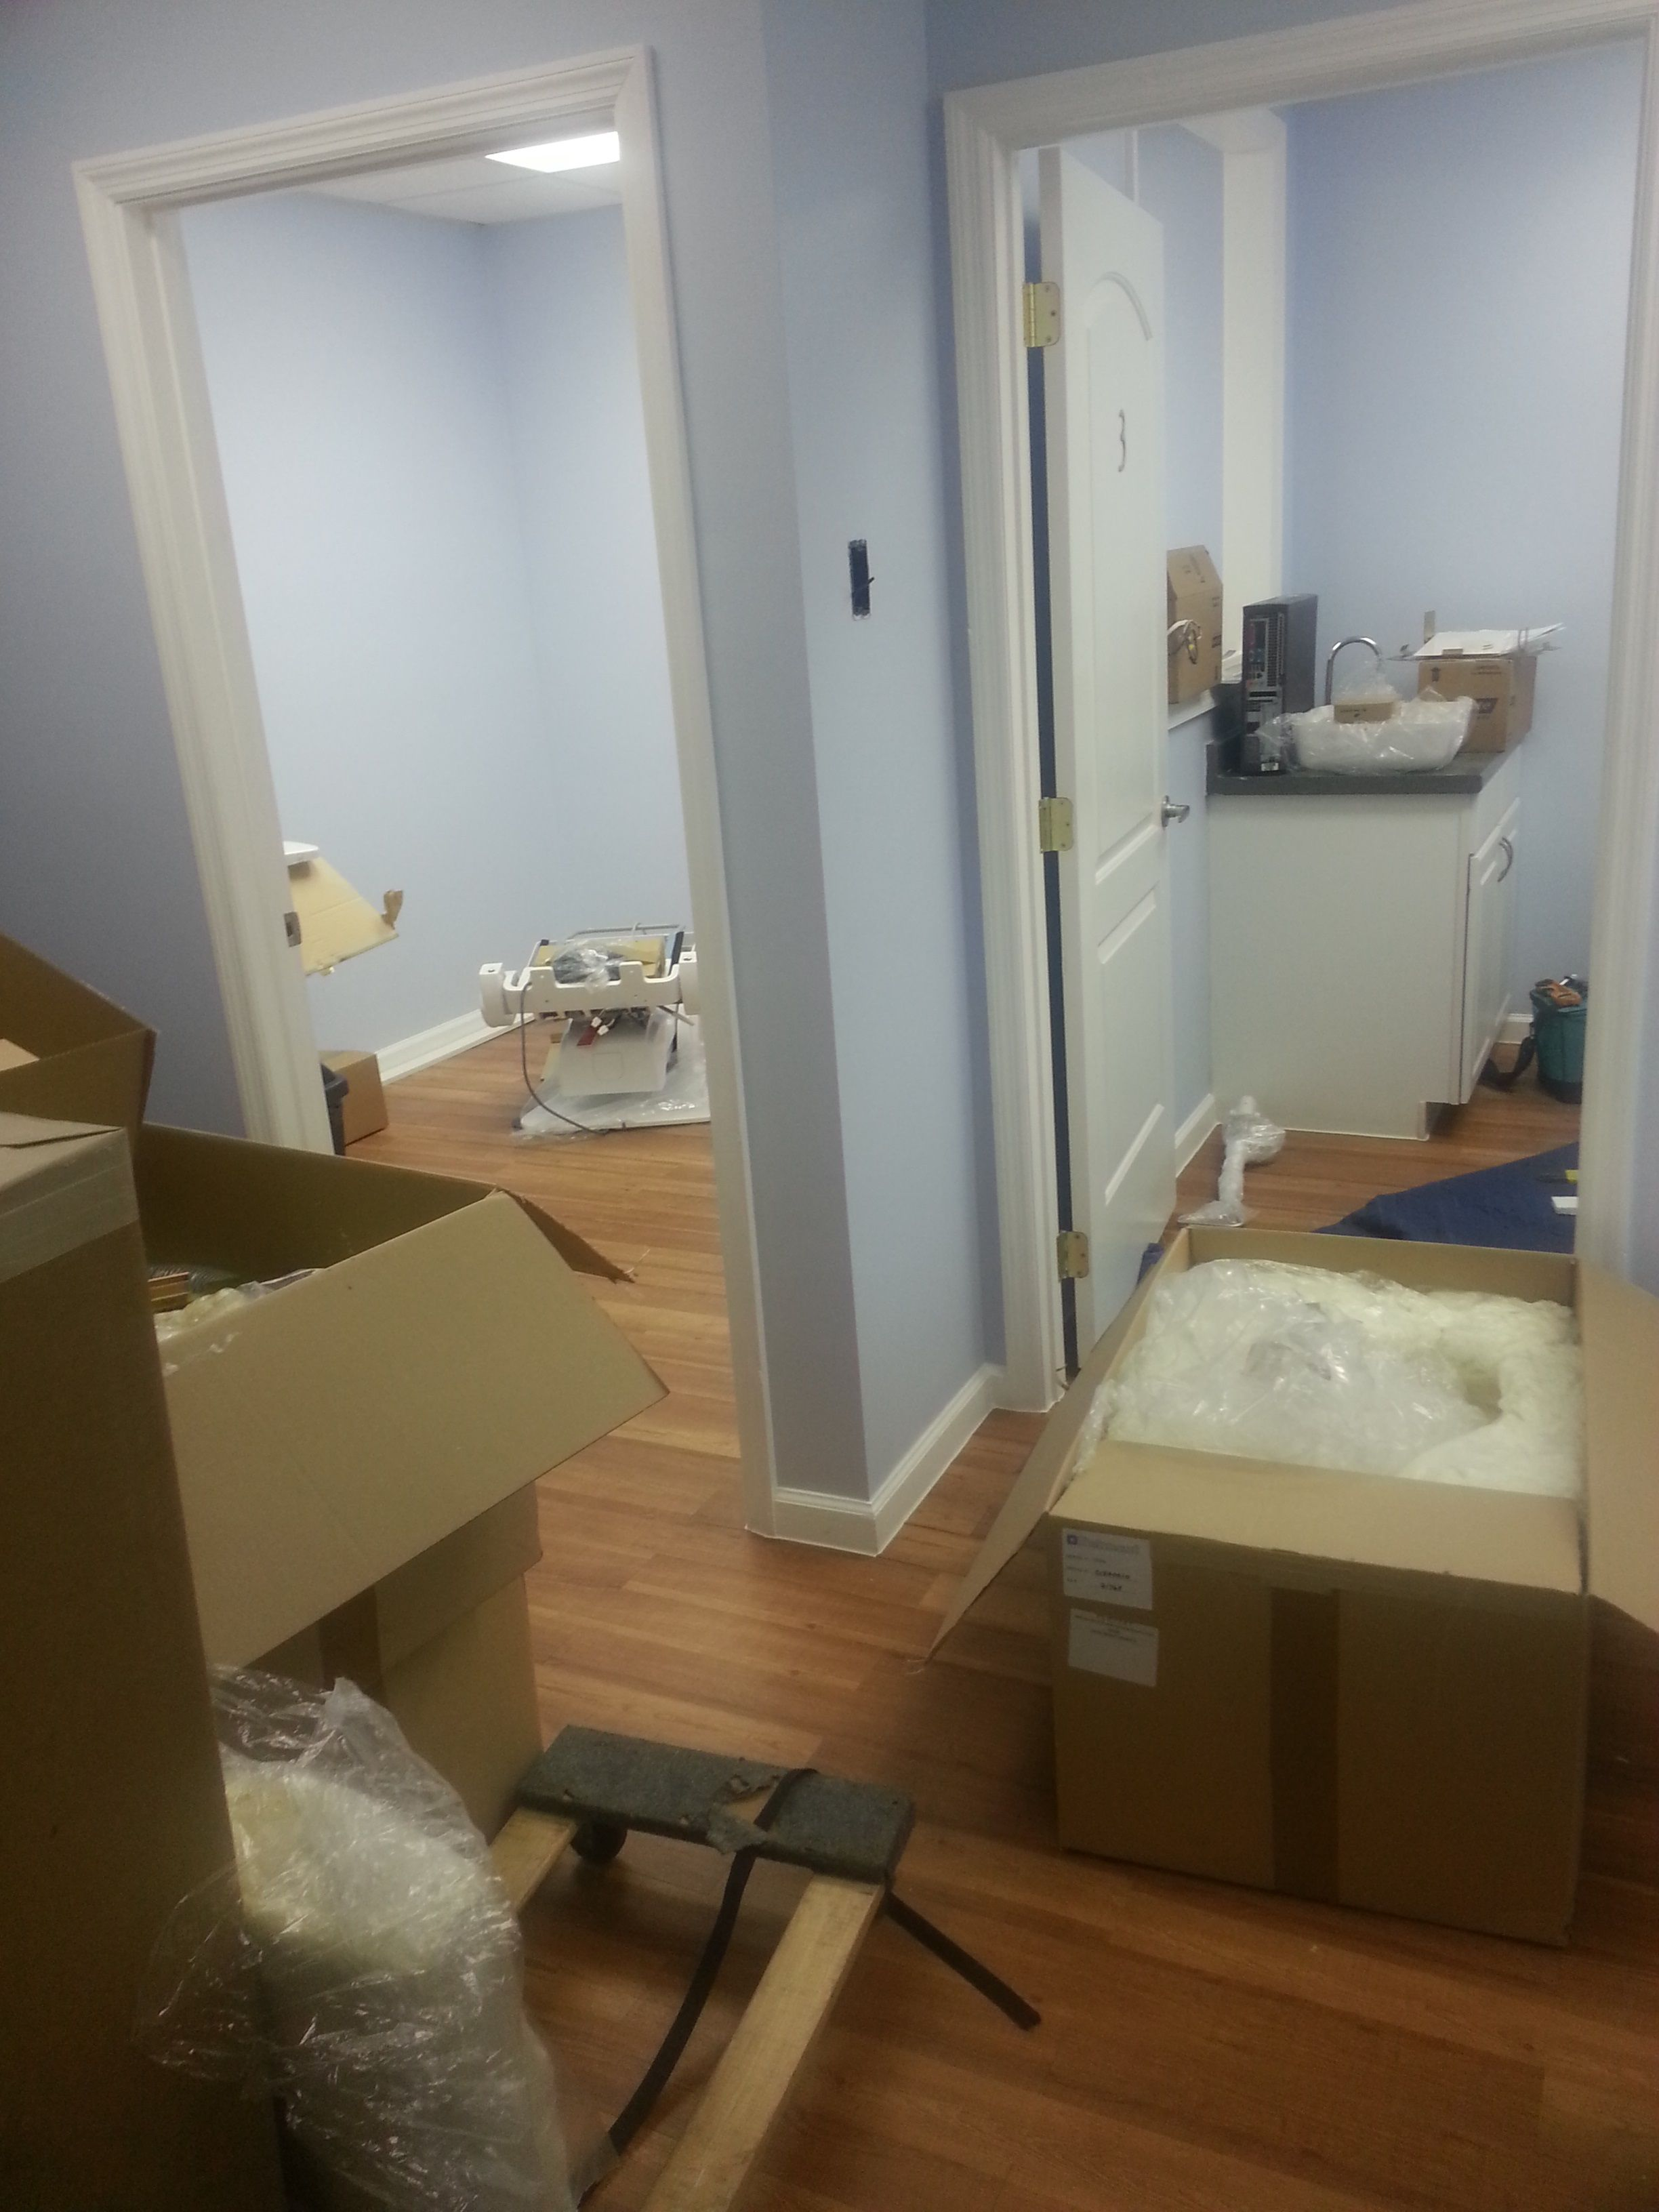 New Hygienist gear and room being setup at our Prima Vista location. Unboxing!